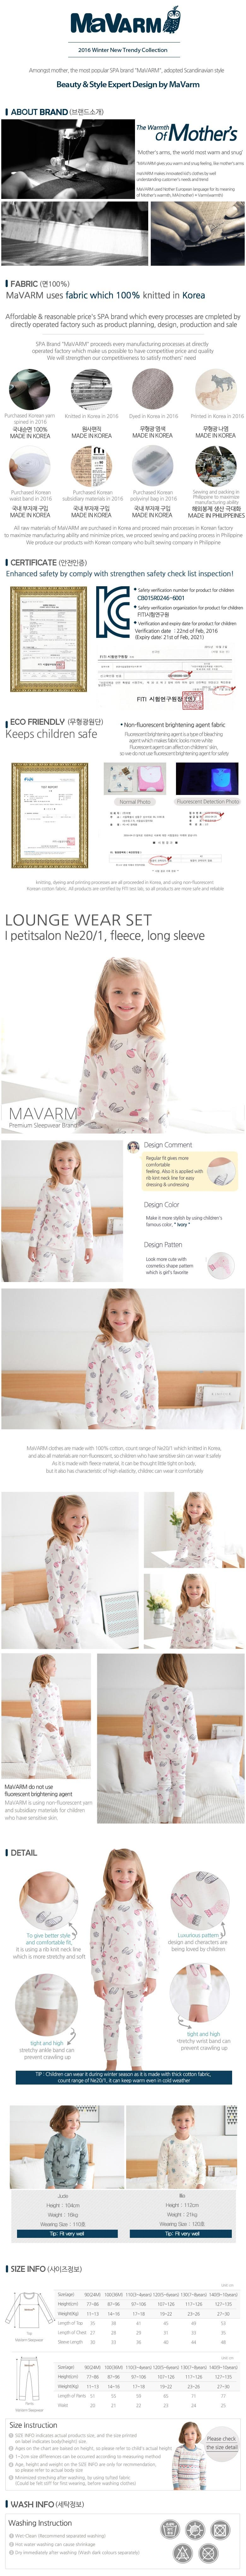 MAVARM Kids clothes_I Petite Salon